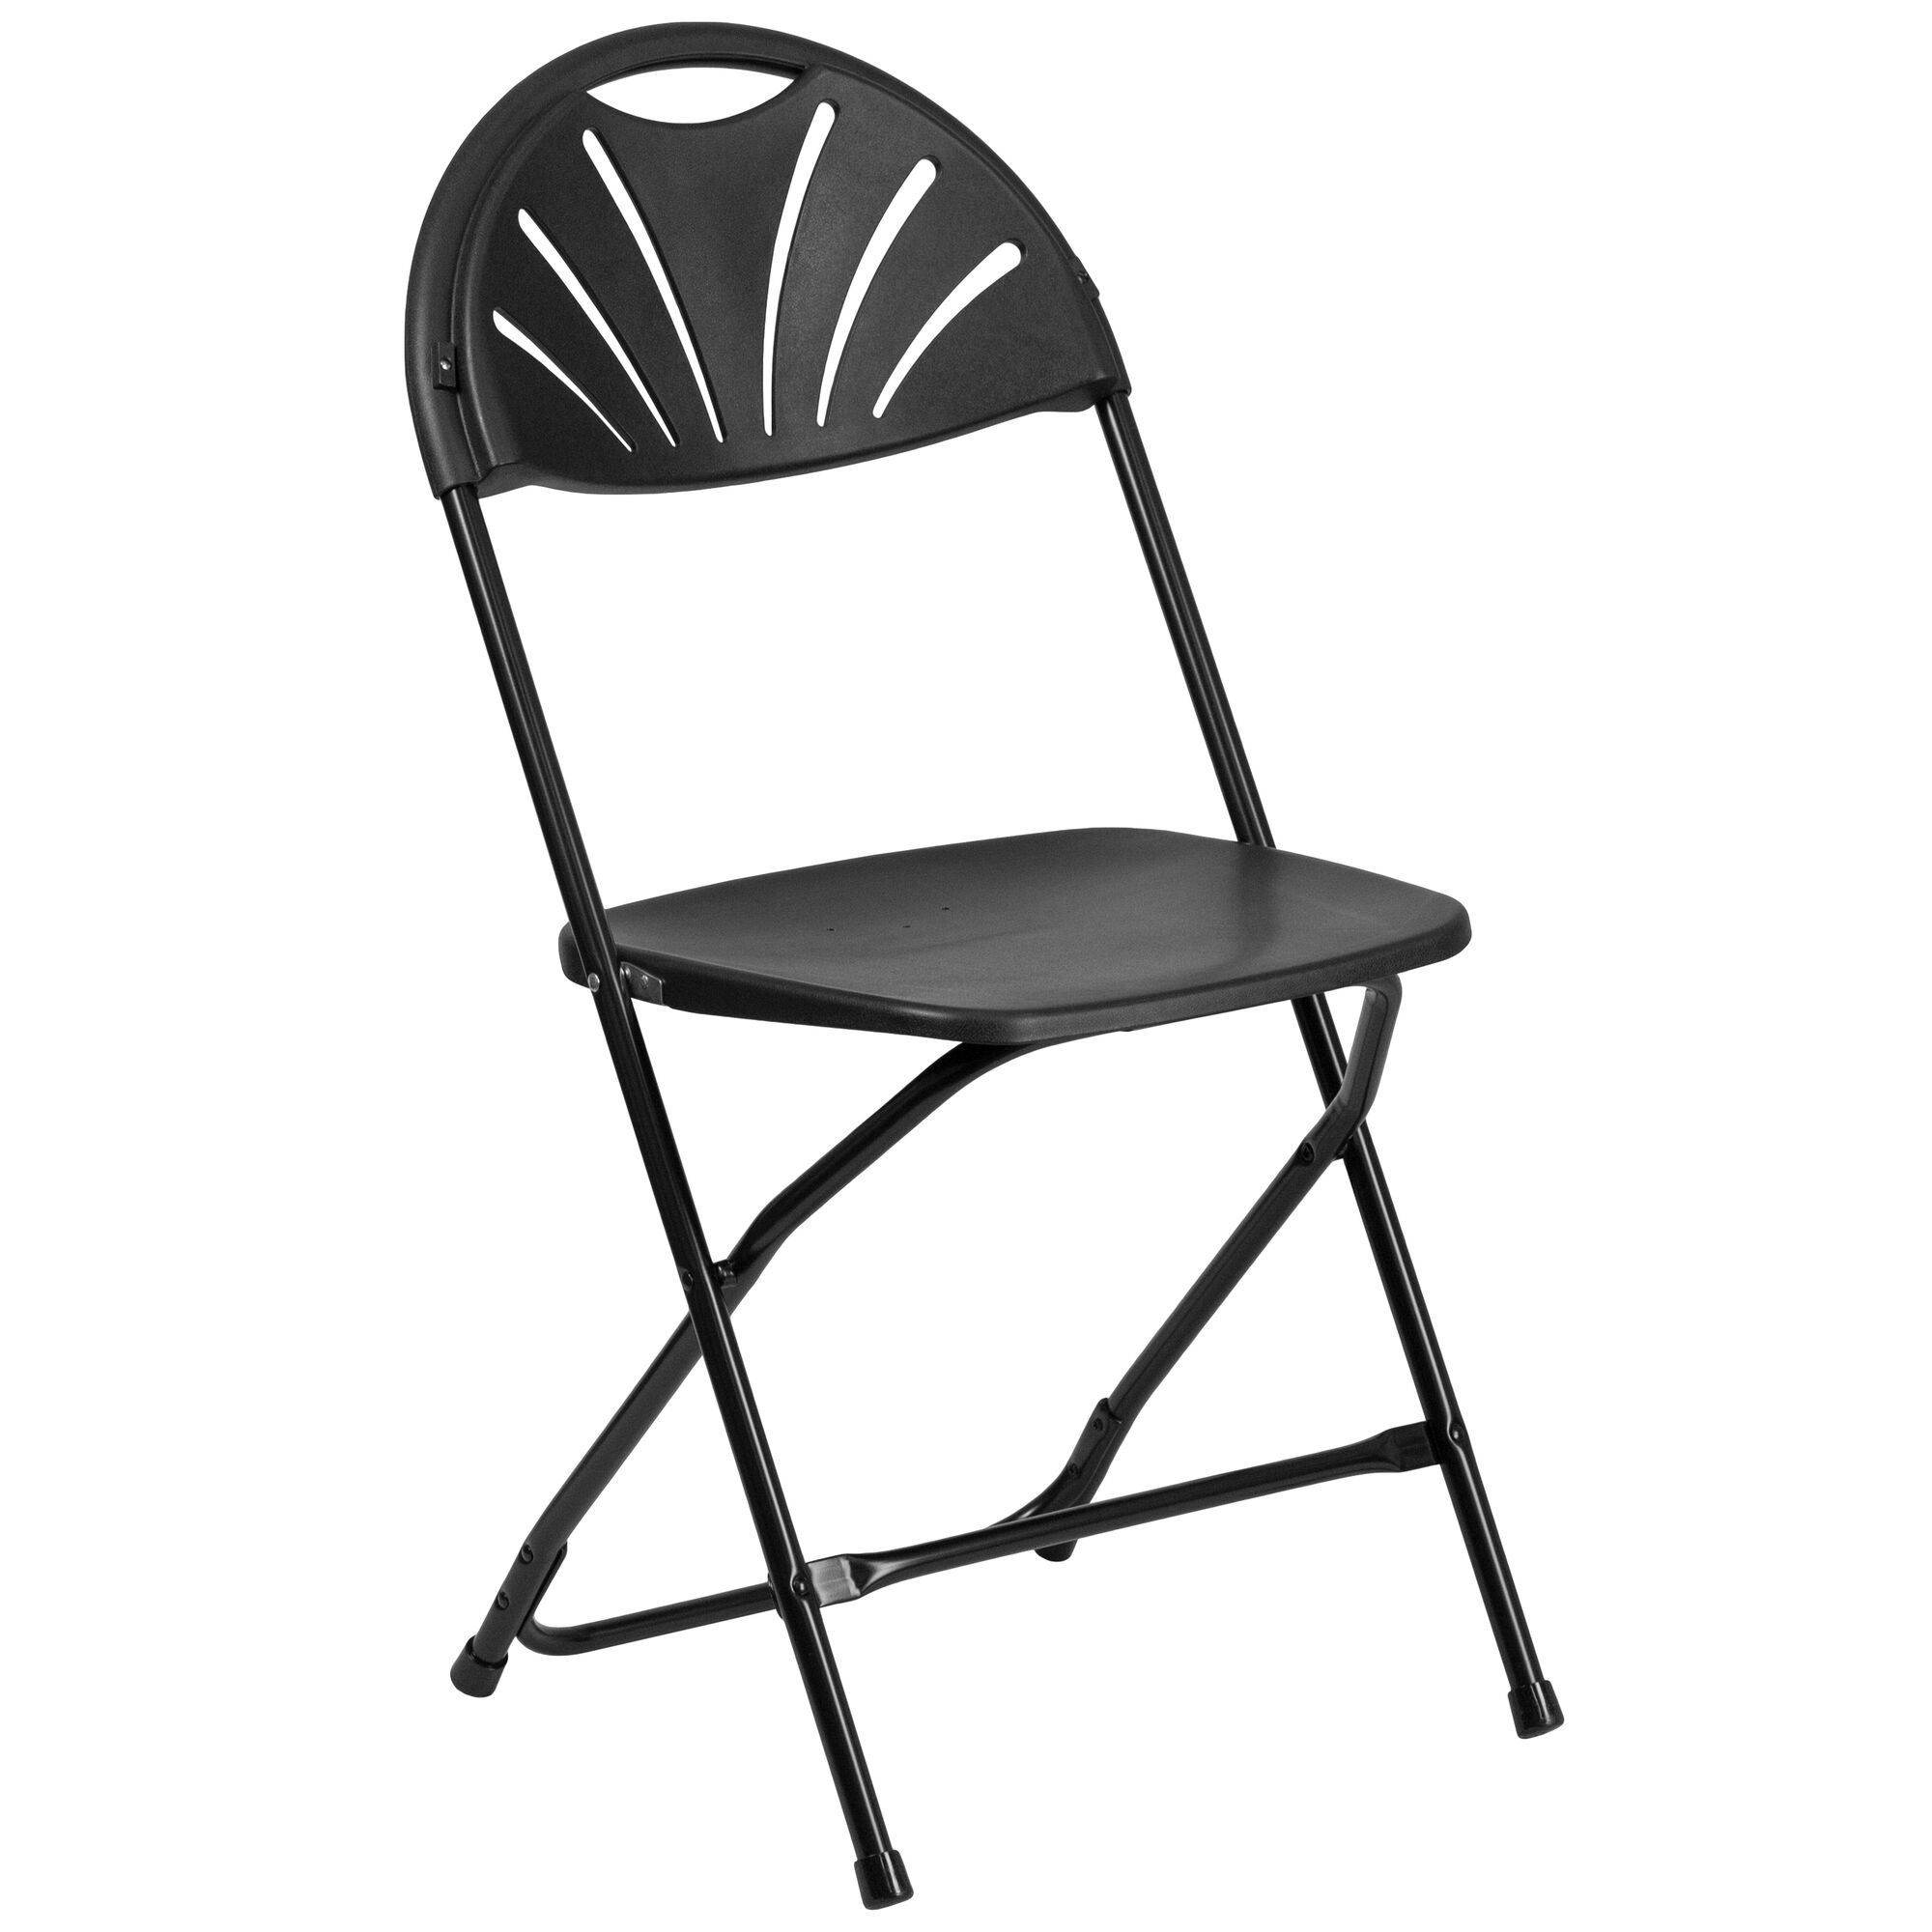 FoldingChairLess Metal Folding Chairs Plastic Folding Chairs